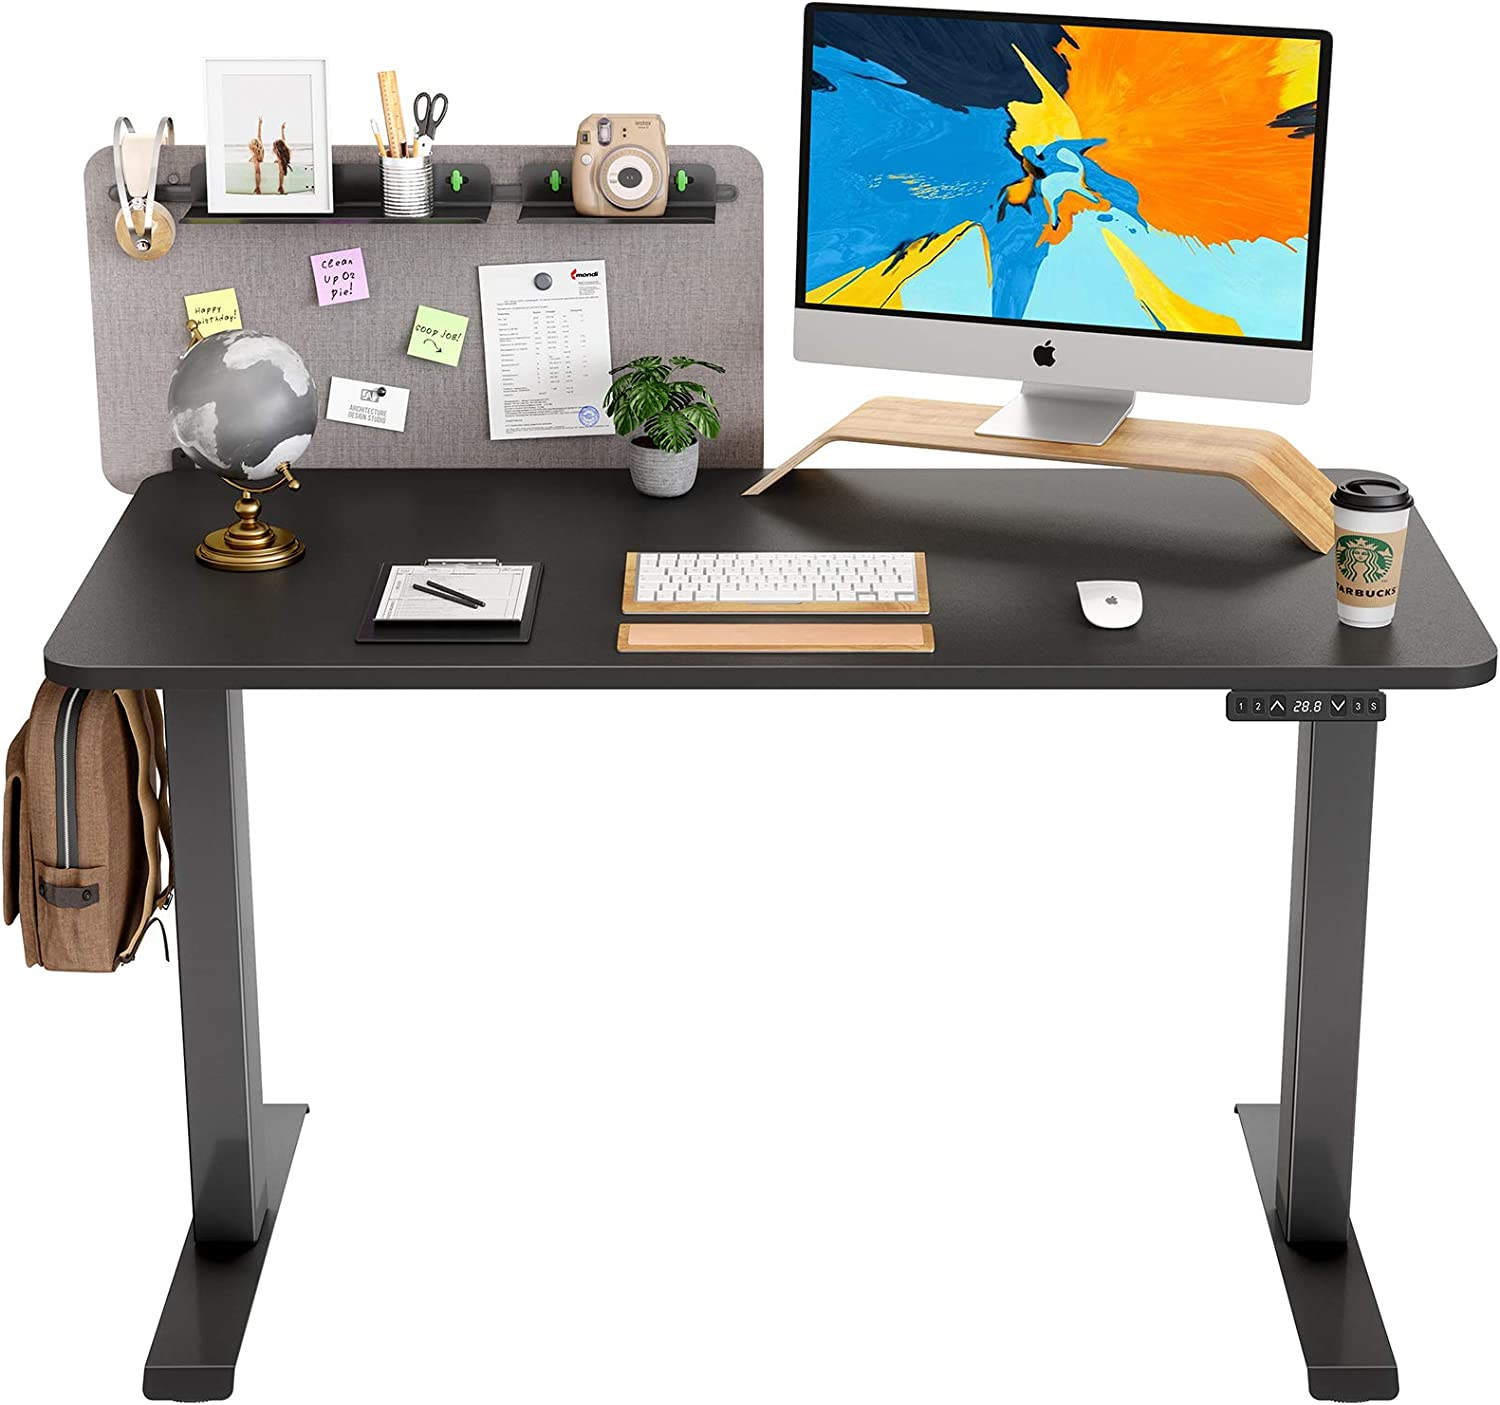 FAMISKY Dual Motor Adjustable Height Electric Standing Desk, Storage Panel with Tray, 48 x 24 Inches Stand Up Table, Sit Stand Home Office Desk with Splice Tabletop, Black Frame/Black Top